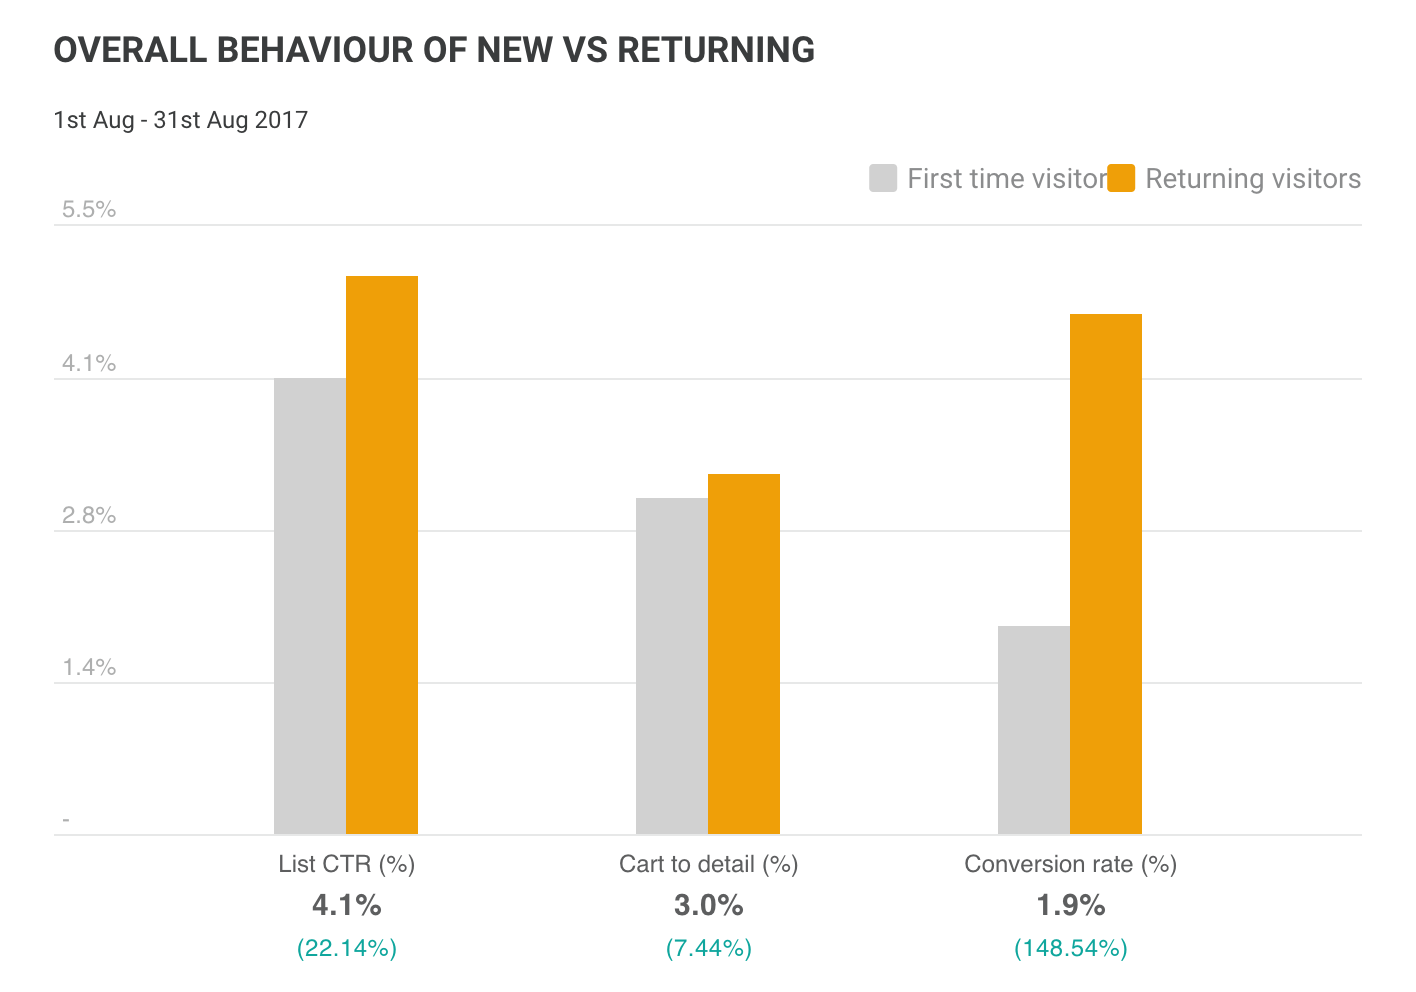 Overall behaviour of new users vs returning users